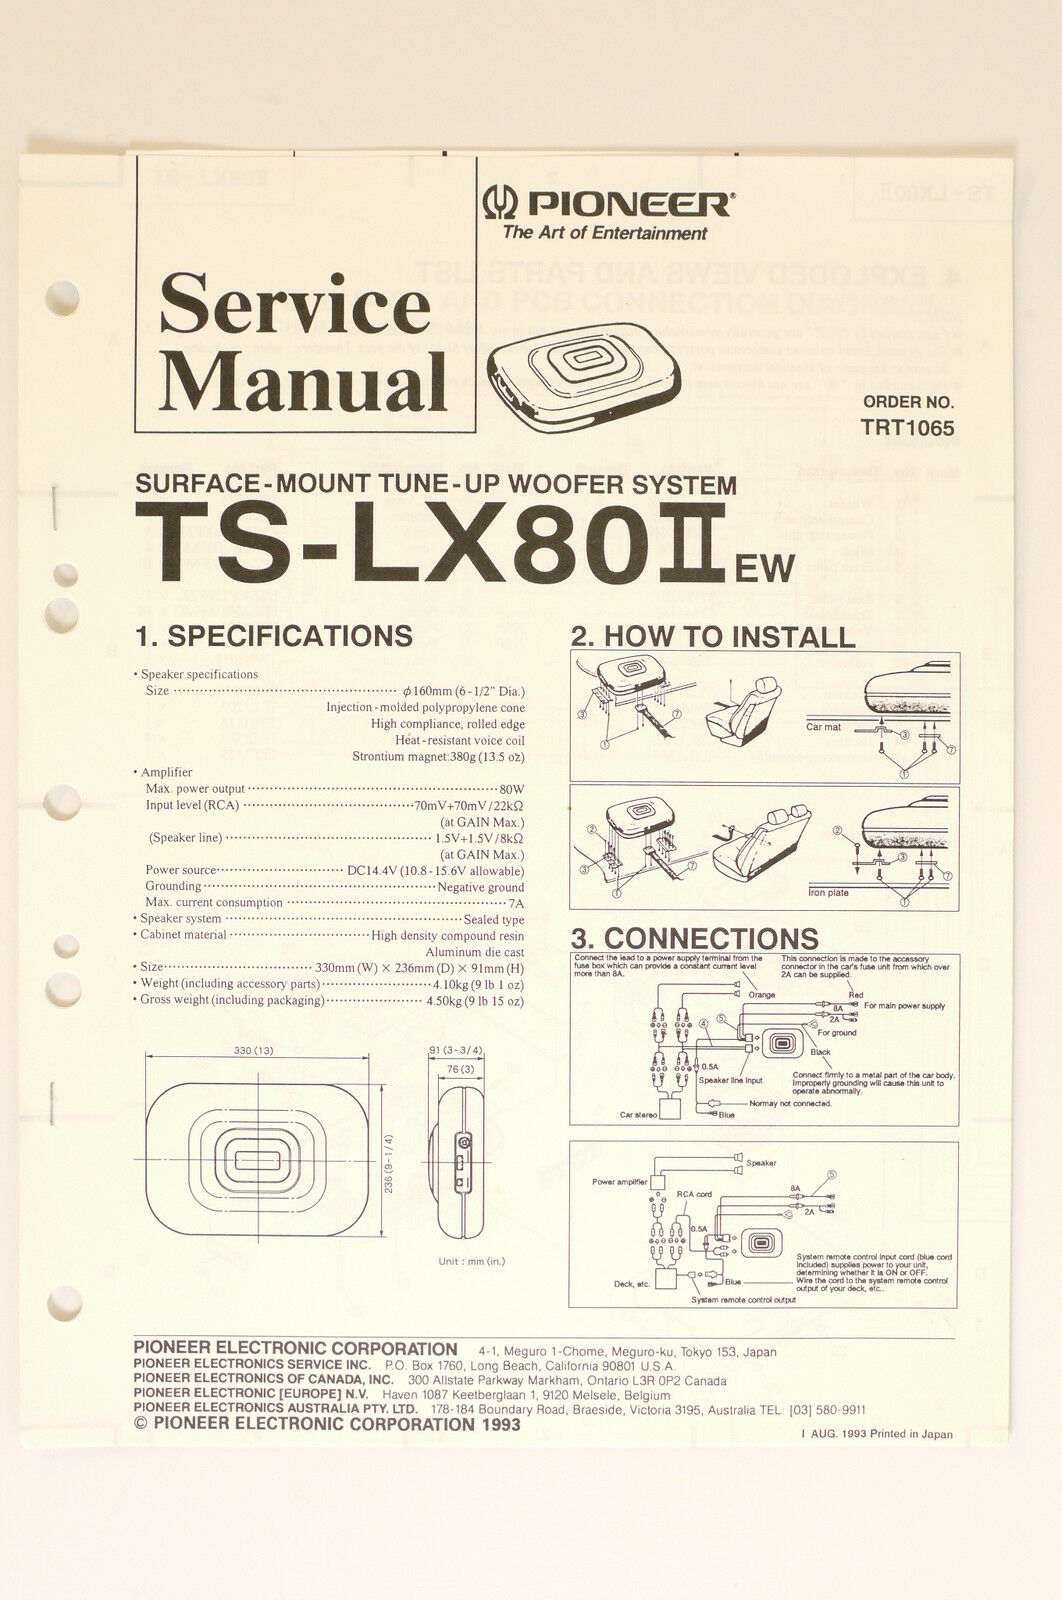 Pioneer Ts Lx80 Ii Ew Original Service Manual Guide Wiring Diagram Trx70 1 Of 1only Available